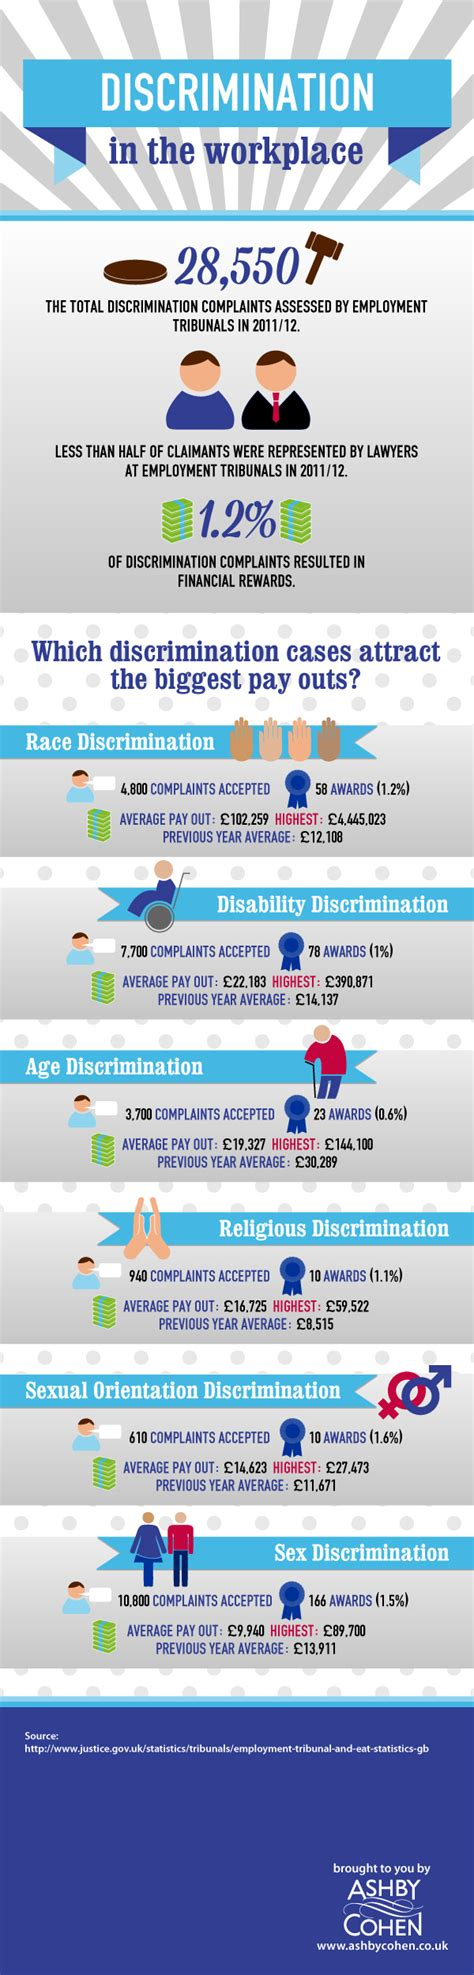 41 Affirmative Action Reverse Discrimination Statistics. Cheap Auto Loans Rates Python For Programmers. Computer Performance Monitoring Software. How To Help Drug Addicts Recover. Average Length Of First Pregnancy. Masters Human Resources Online. Mortgage Fees Comparison Best Uk Film Schools. How To See My Credit Report For Free. Sharepoint Knowledge Management